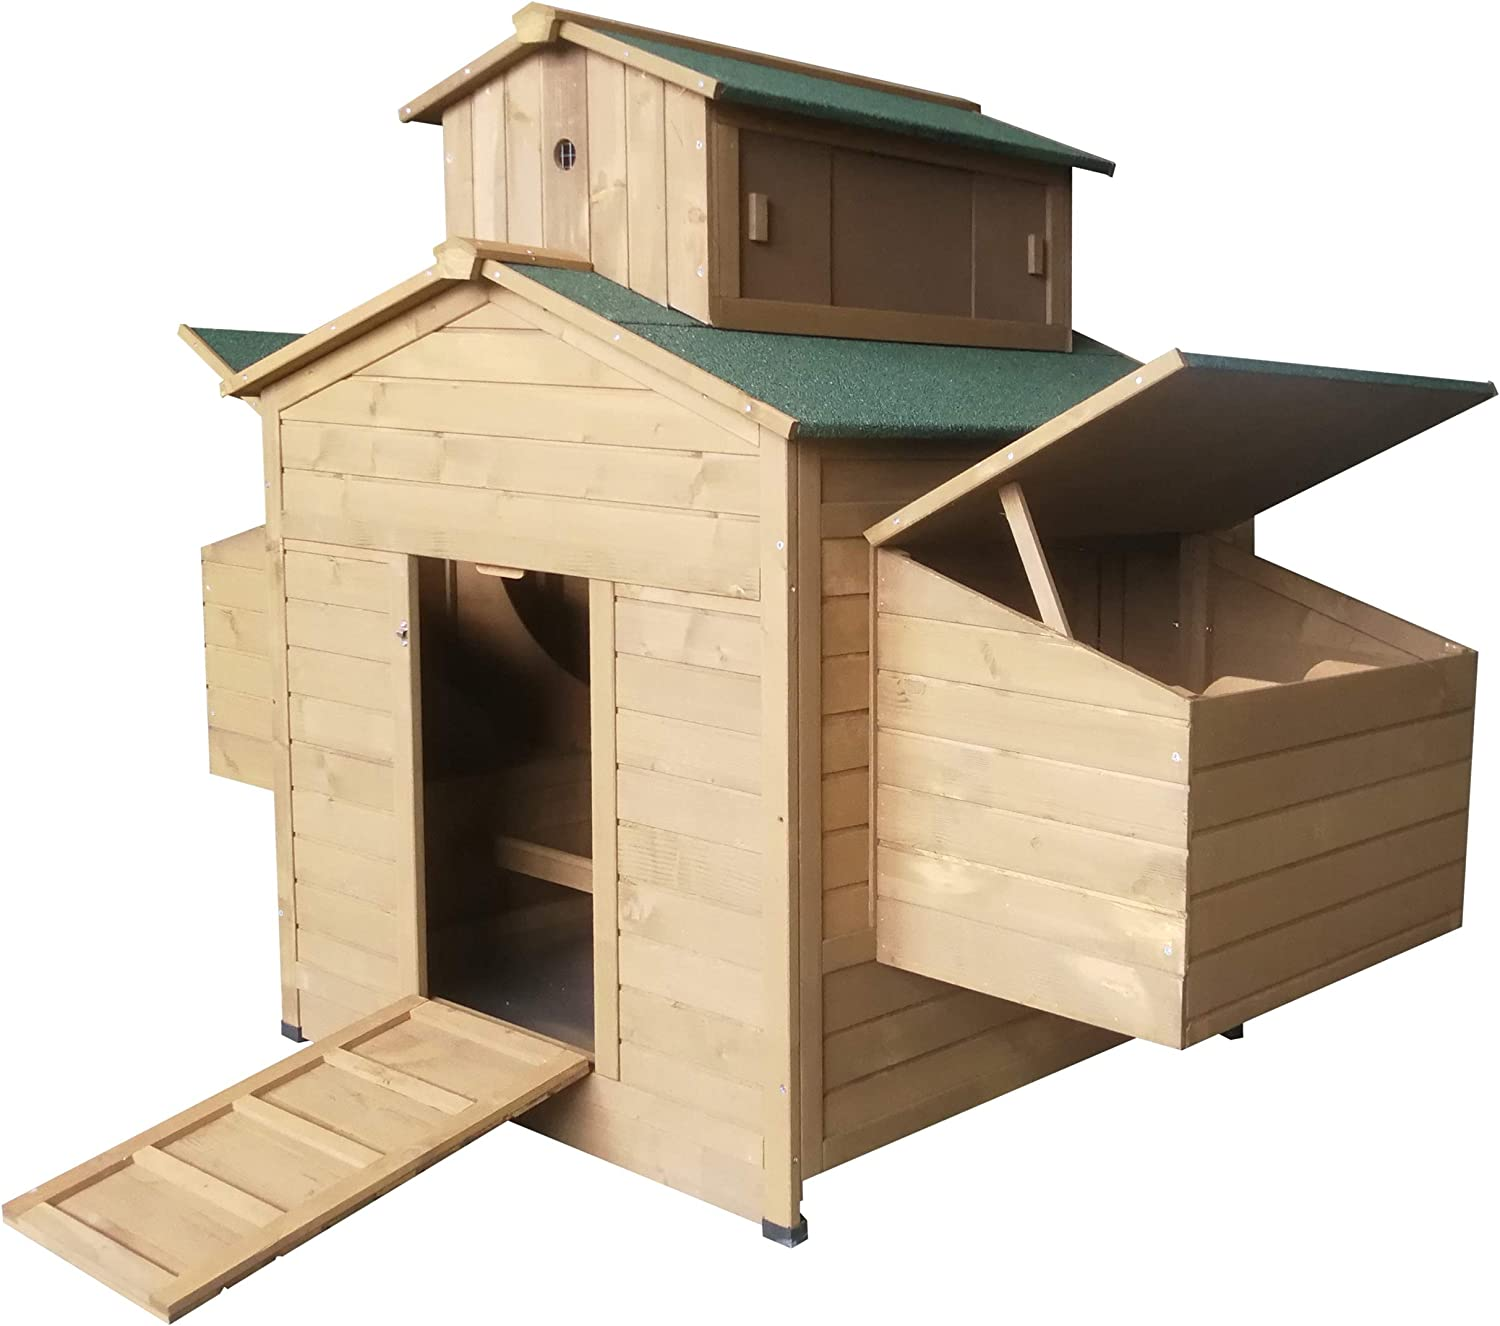 Omitree Deluxe Large Backyard Wood Chicken Coop Hen House 6-10 Chickens with 6 Nesting Box